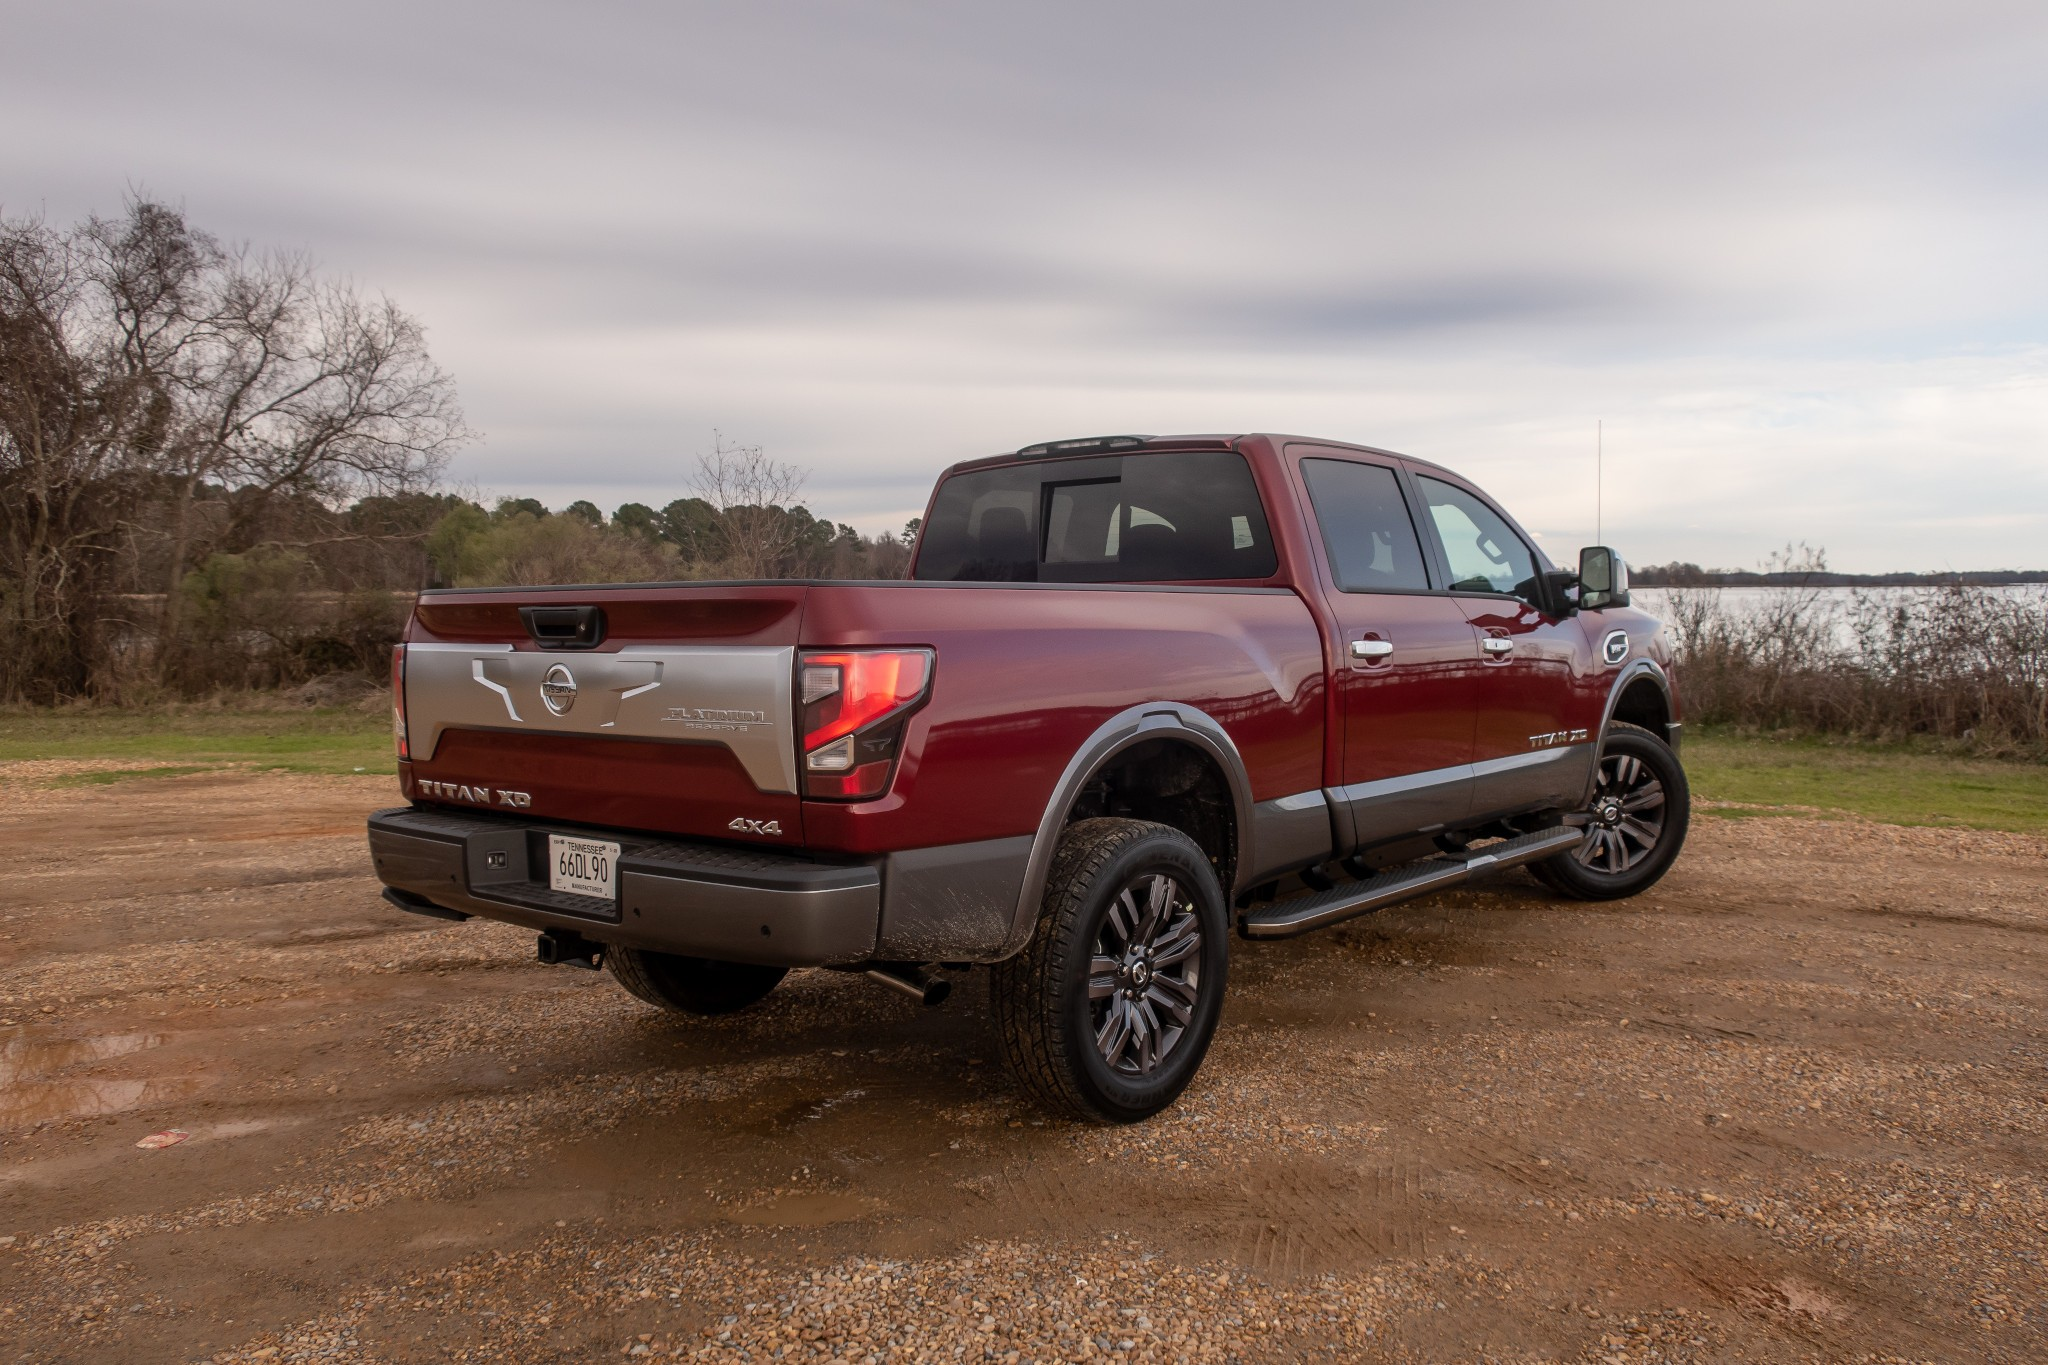 2020 Nissan Titan XD: 6 Pros and 2 Cons